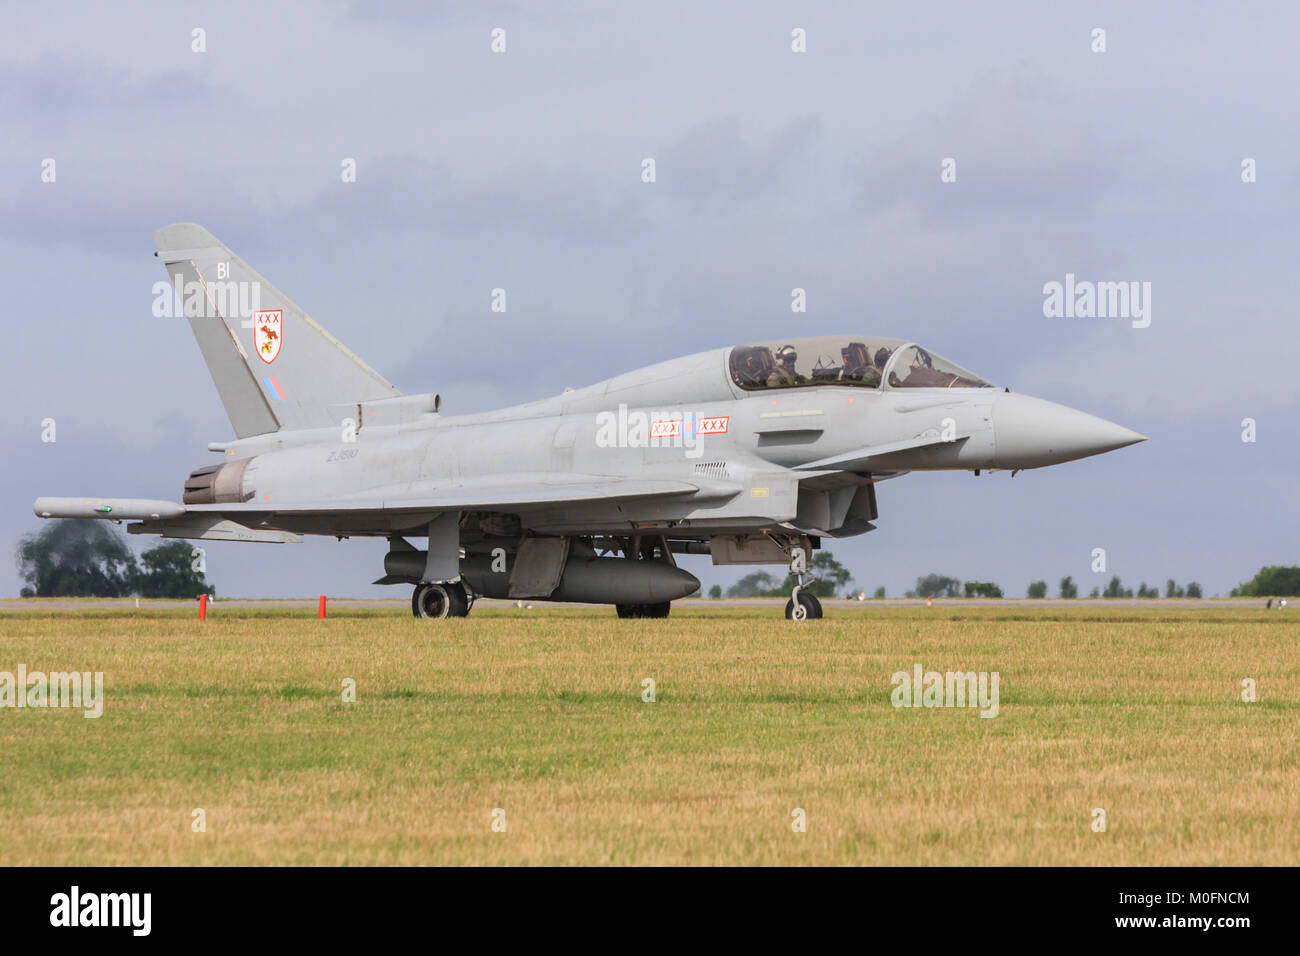 Twin seater typhoon Eurofighter jet taxiing for takeoff. - Stock Image